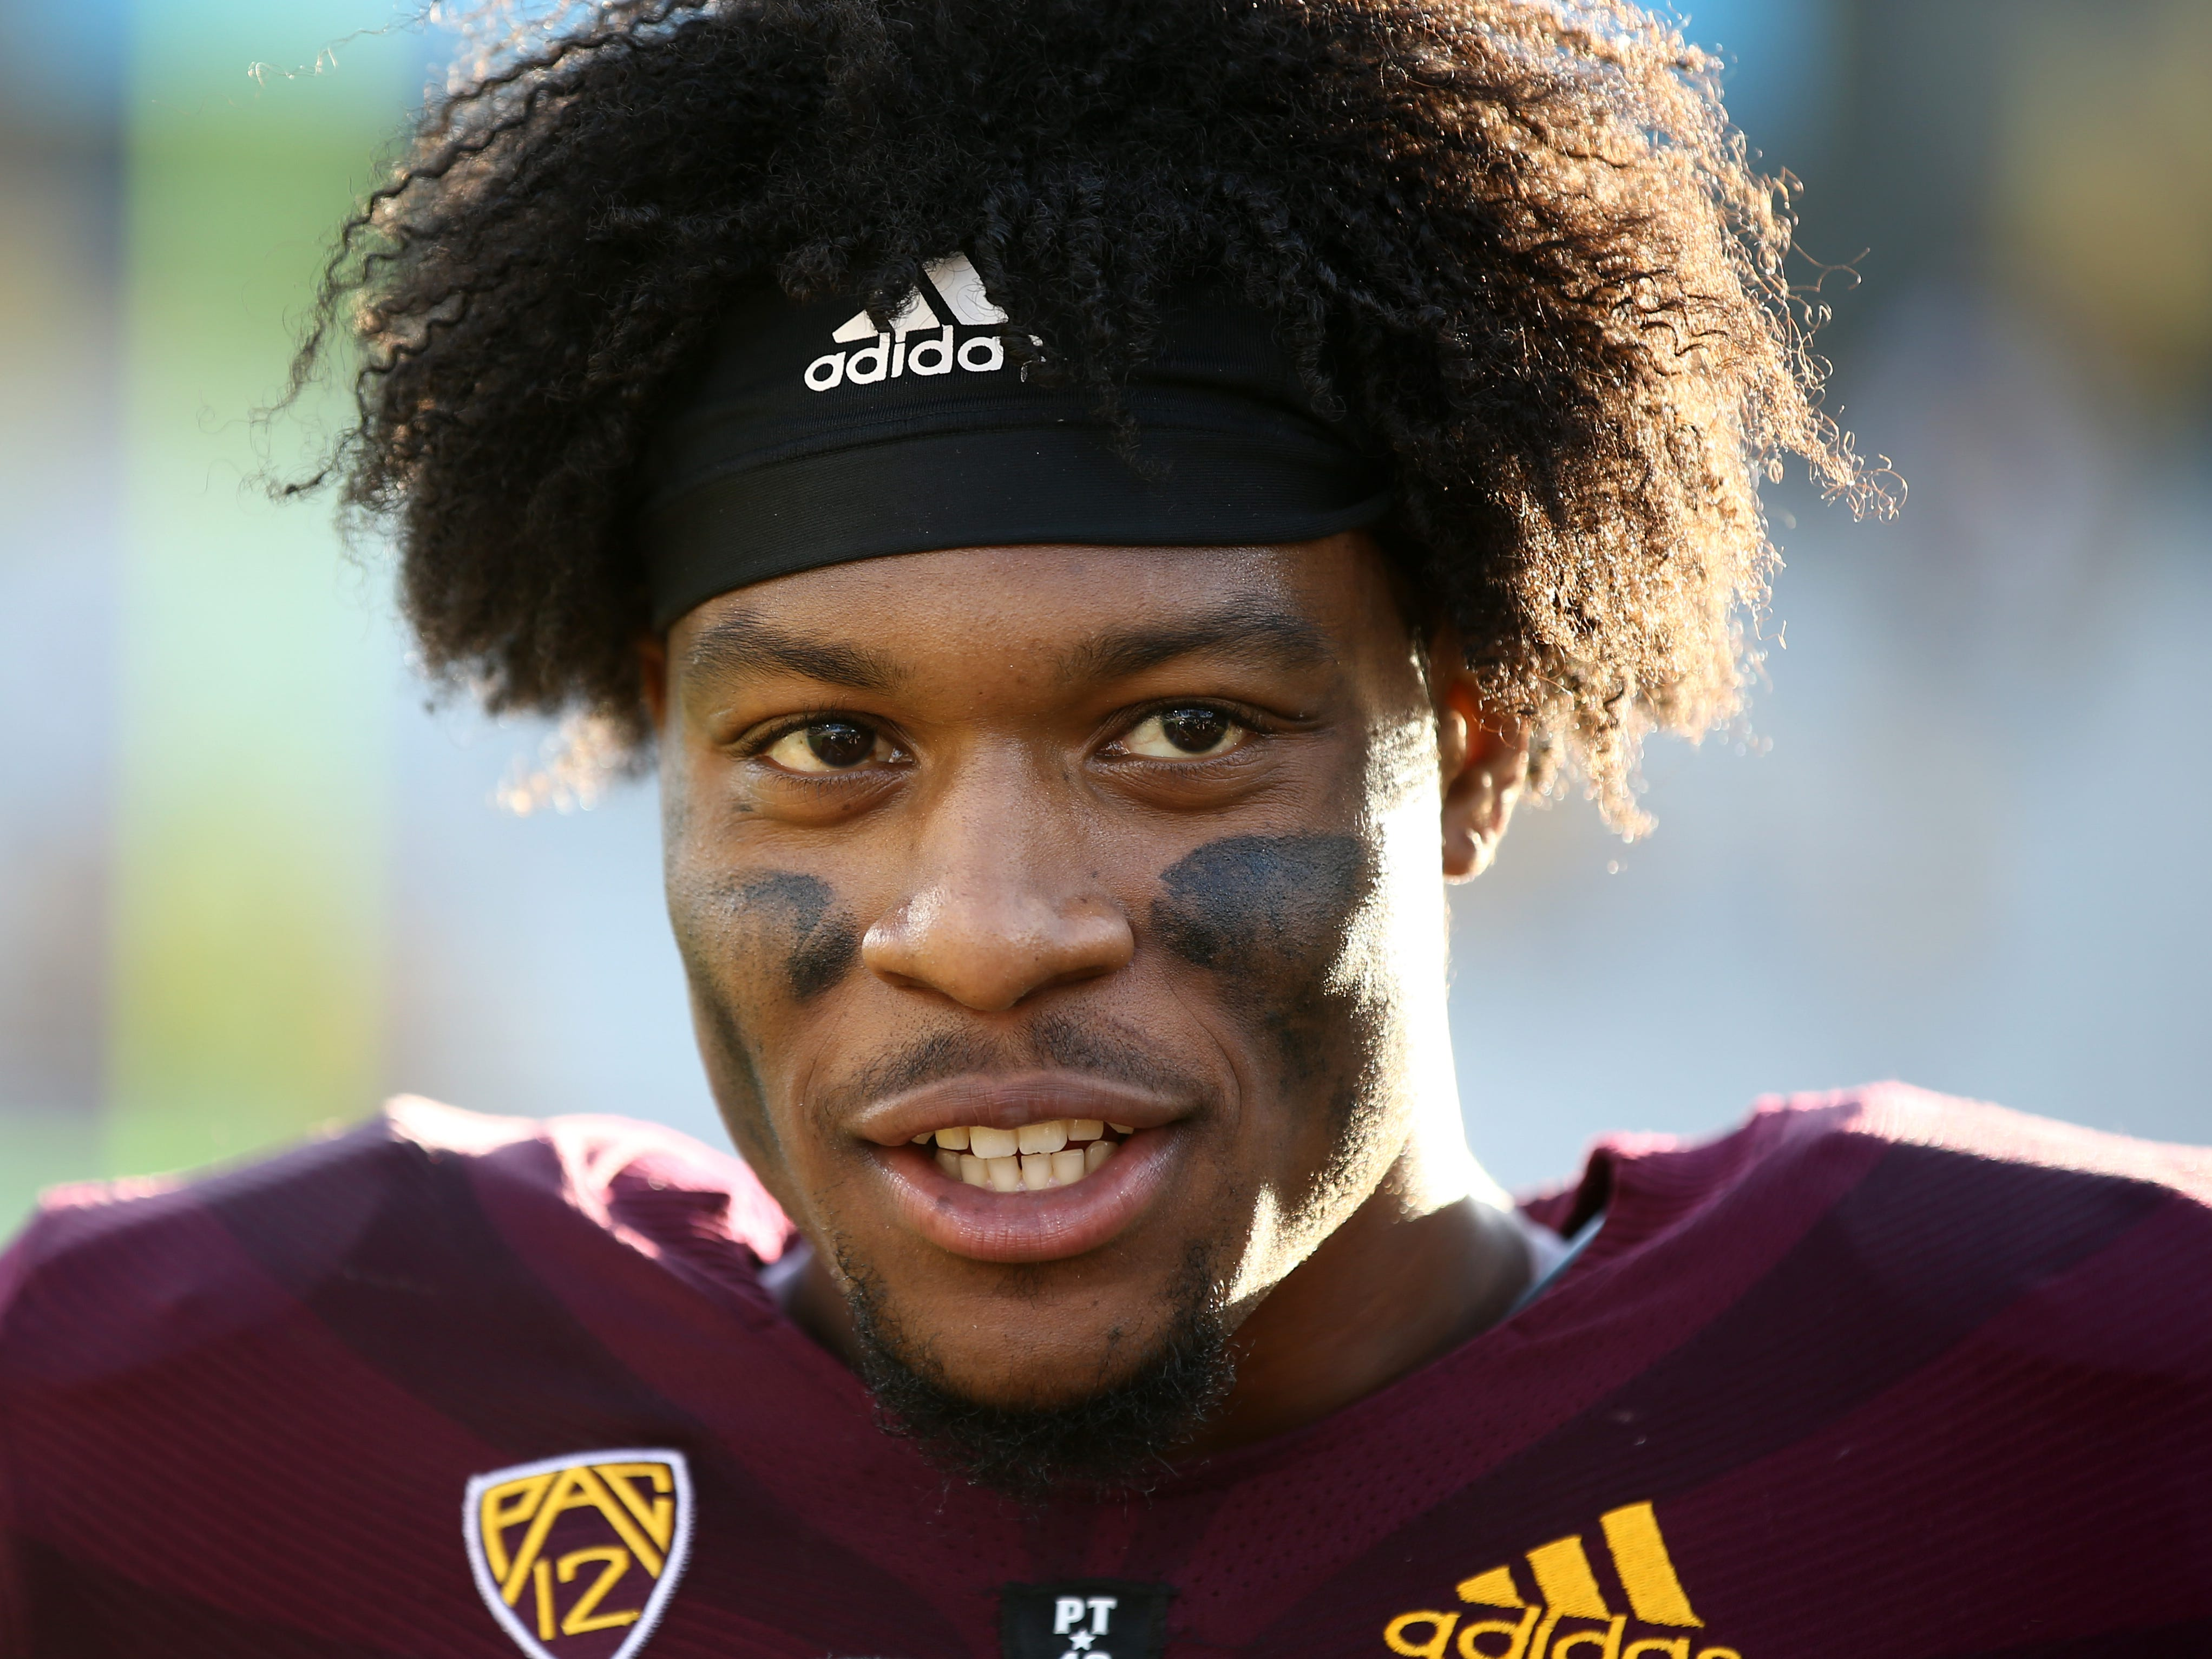 Arizona State's N'Keal Harry during post game interview on Nov. 3 at Sun Devil Stadium.